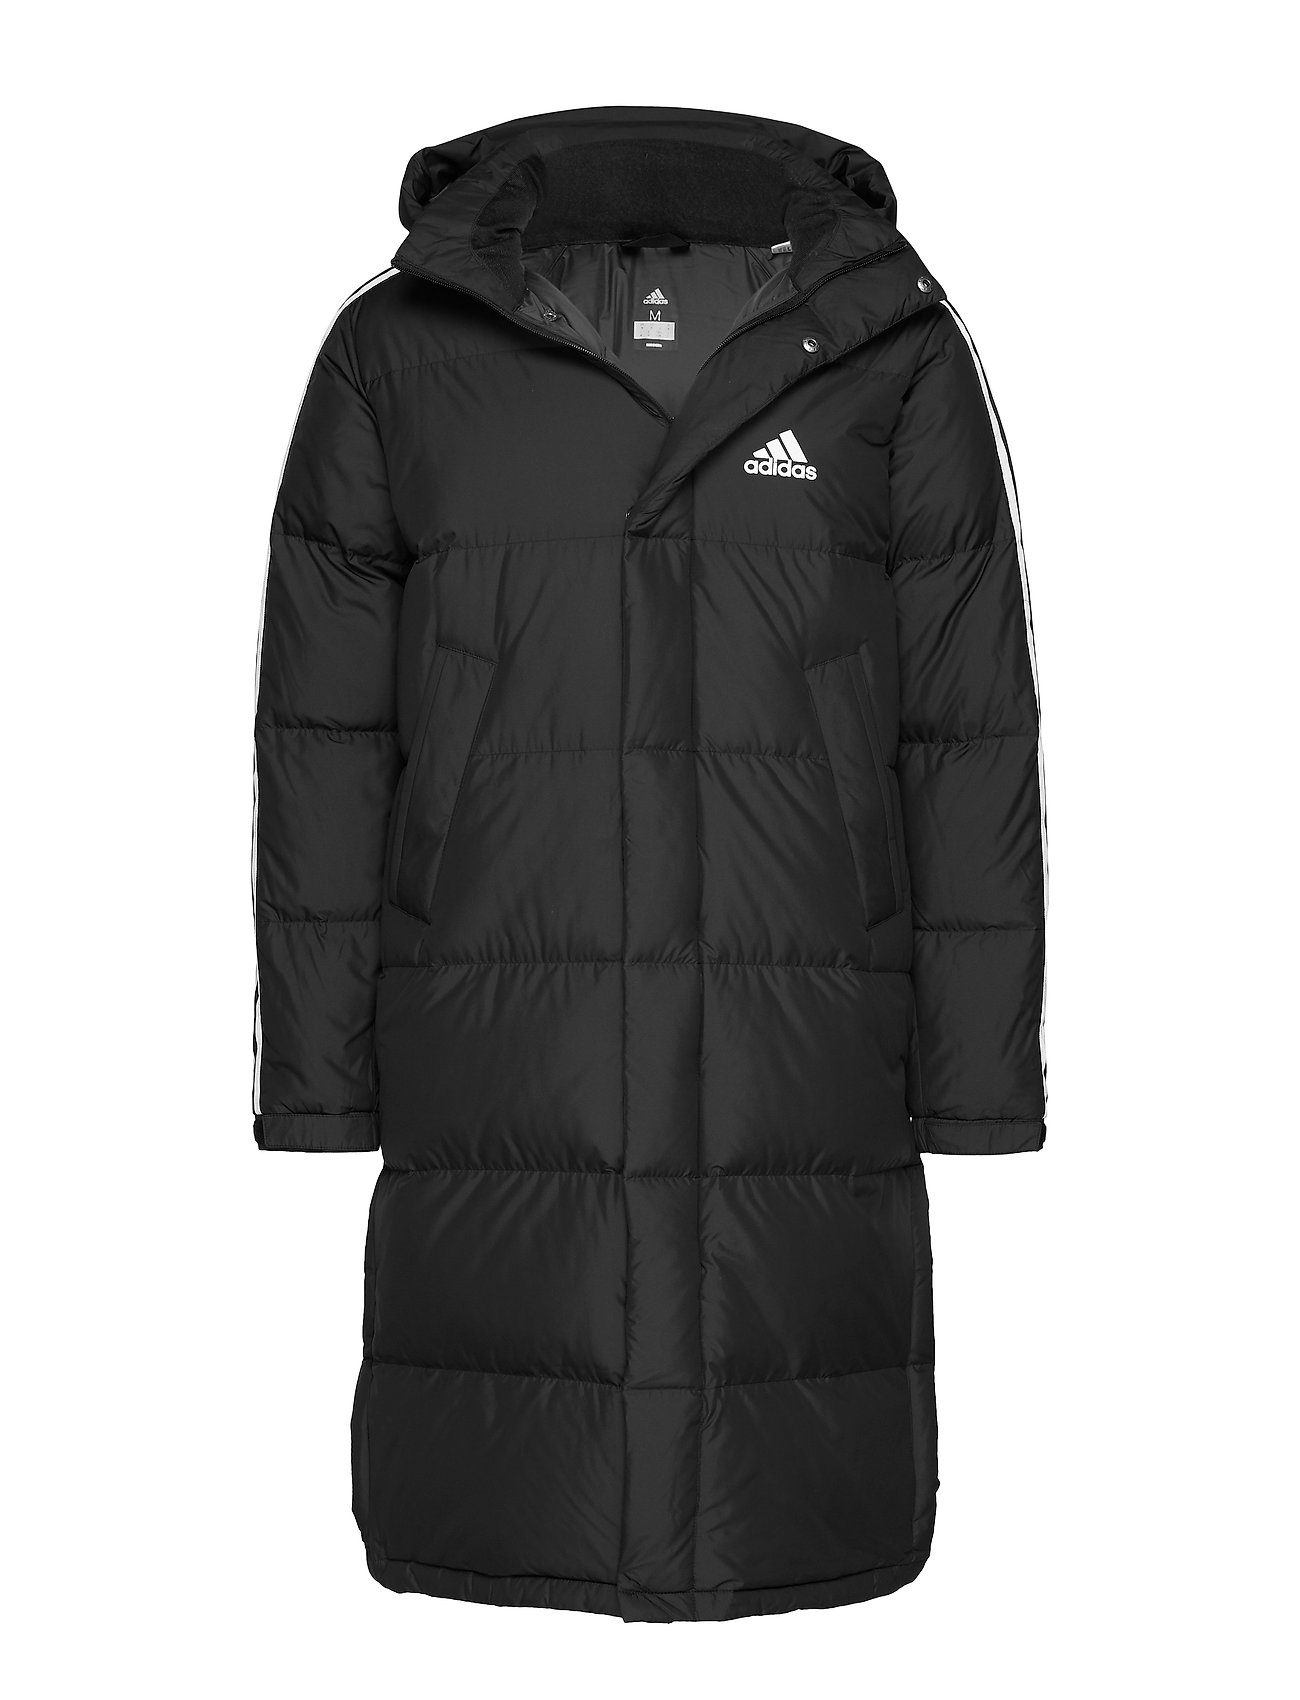 adidas Performance 3ST LONG PARKA - BLACK/WHITE/WHITE